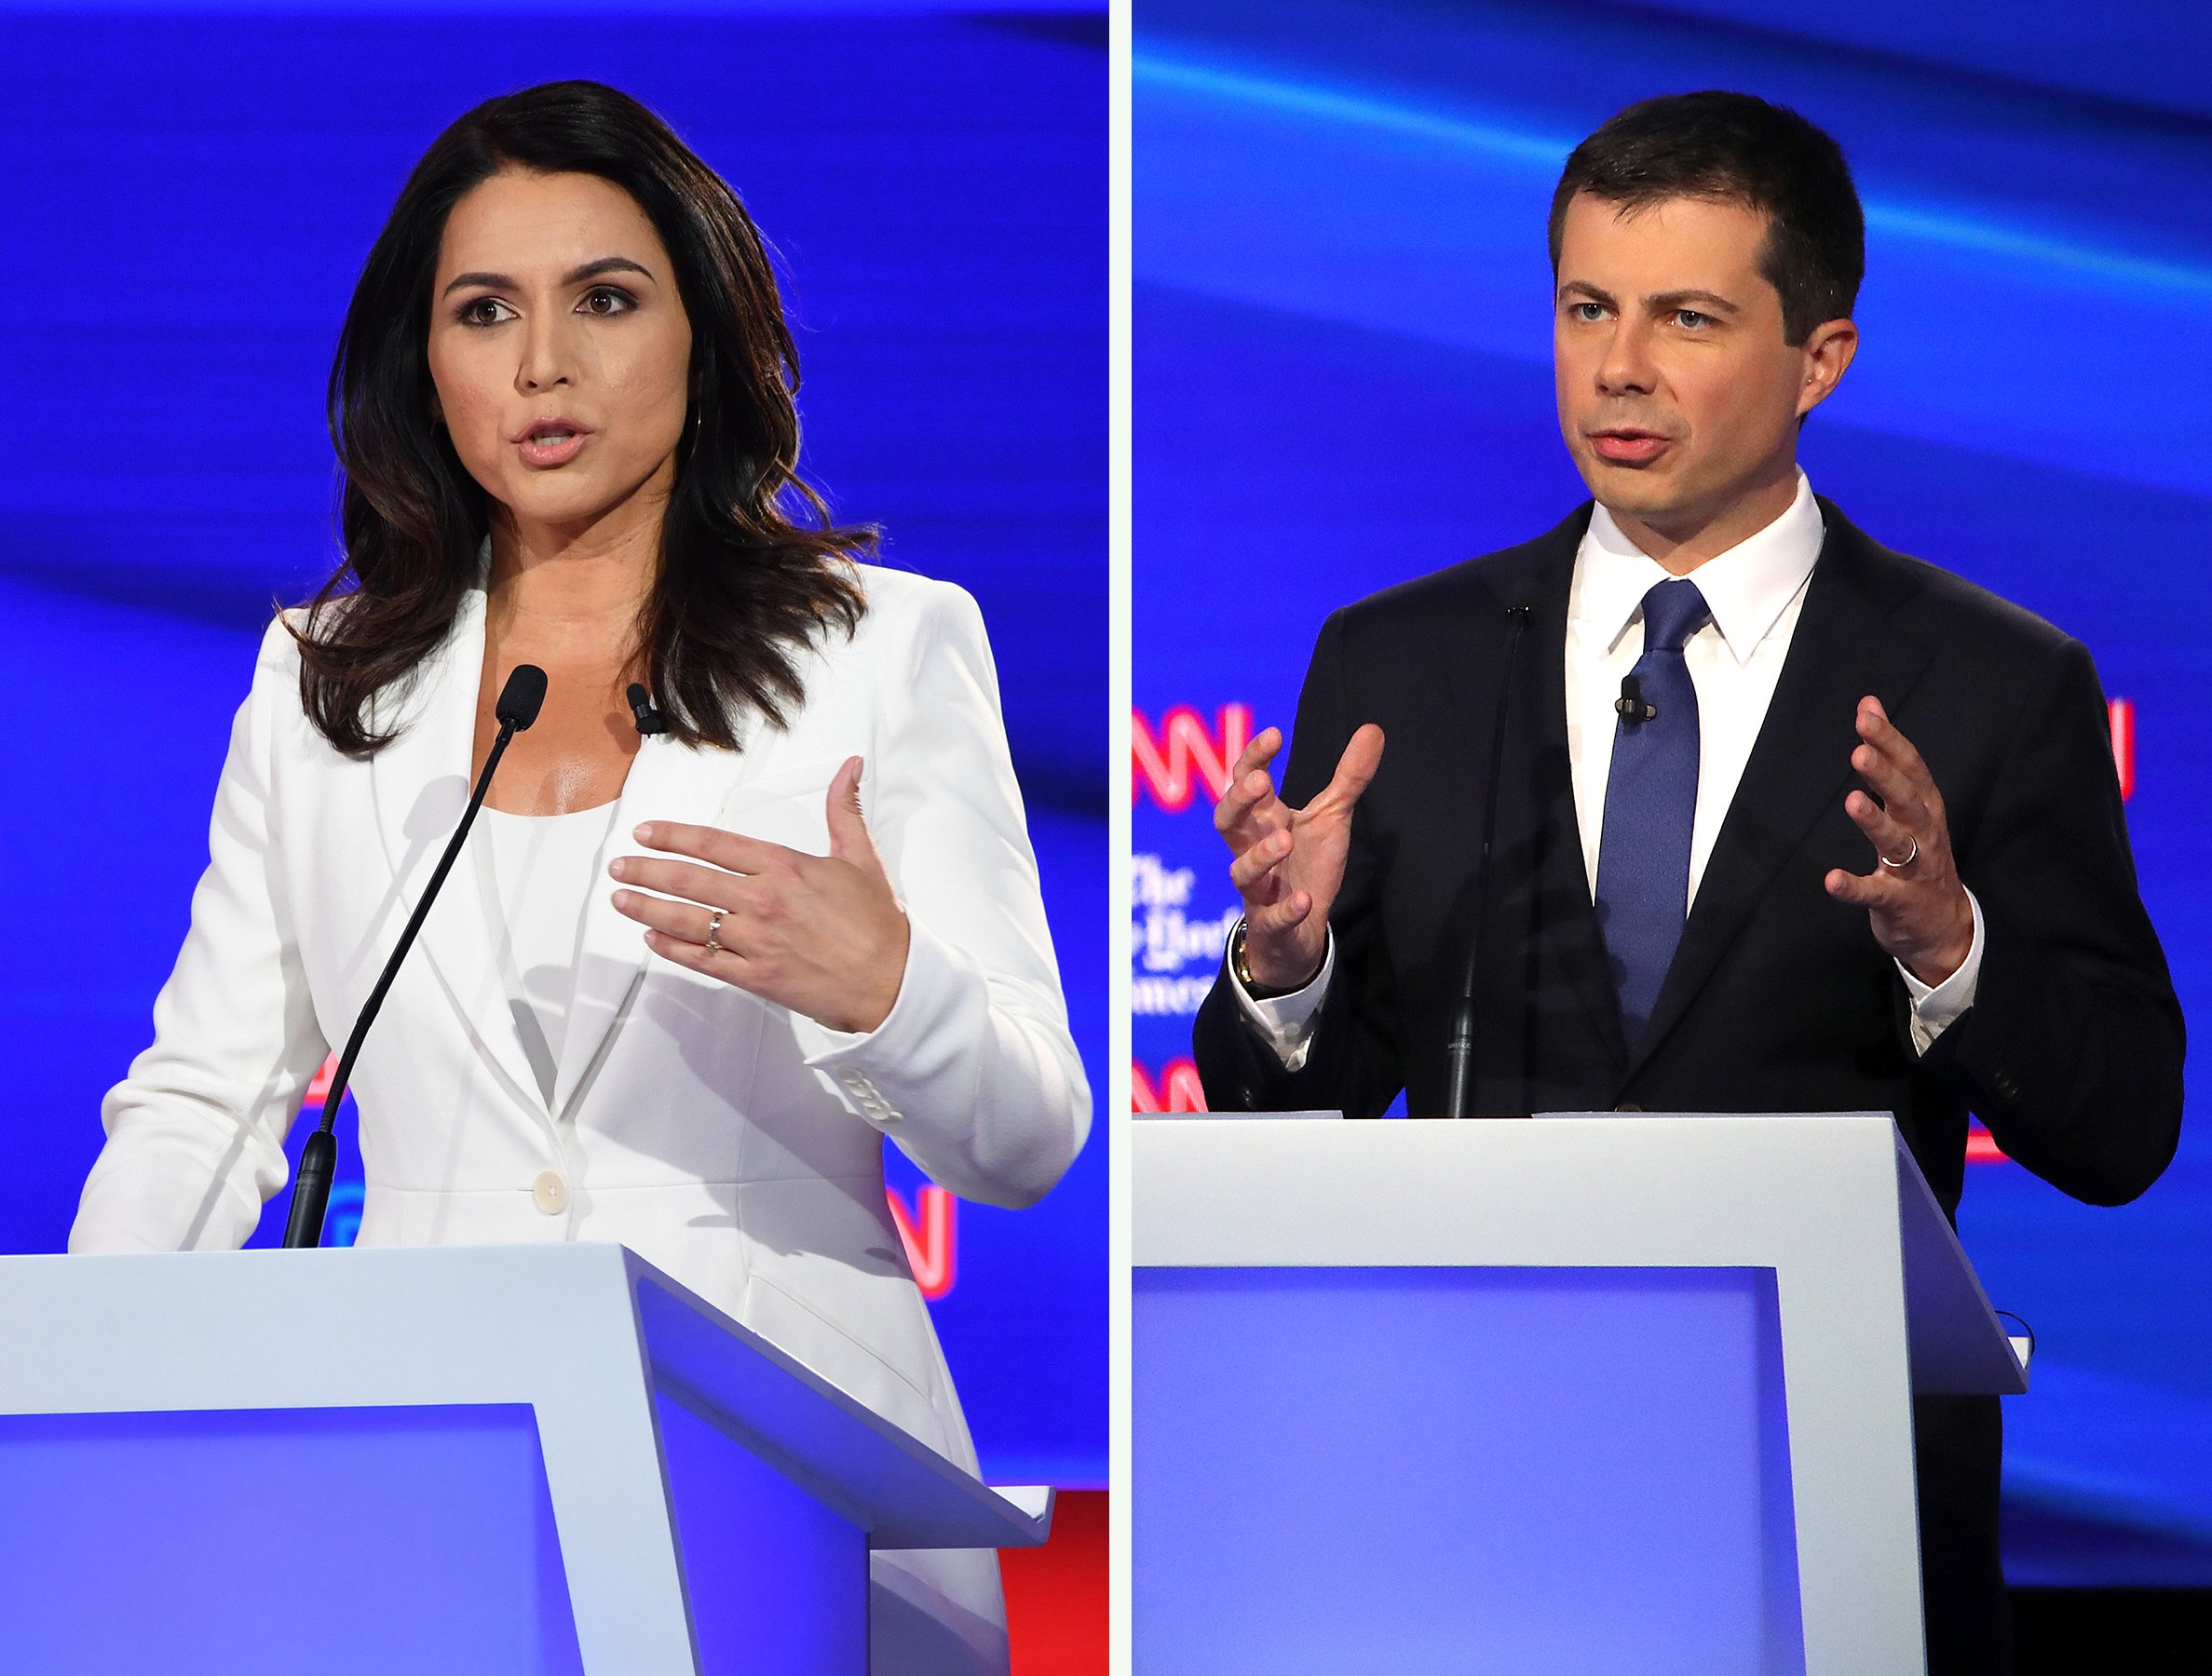 In Democratic Debate, A Fiery Clash Over U.S. Role In Syria